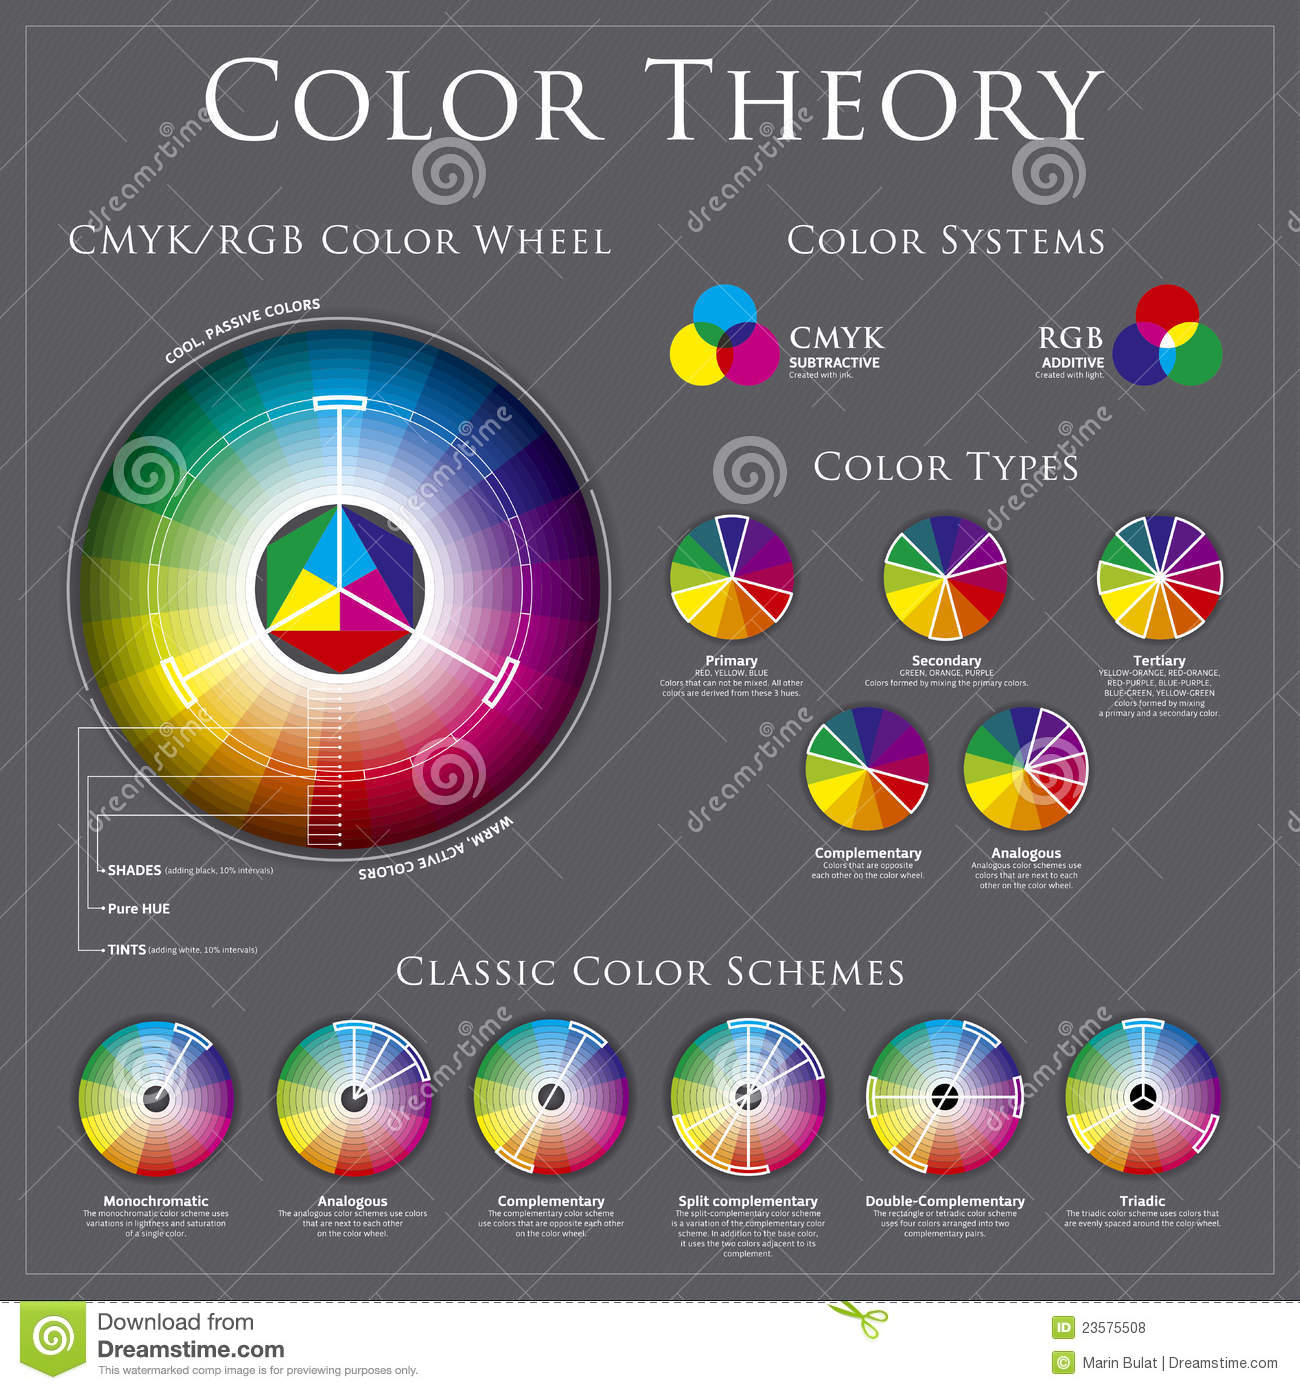 Color wheel complementary colors - Color Wheel Complementary Colors Interior Design